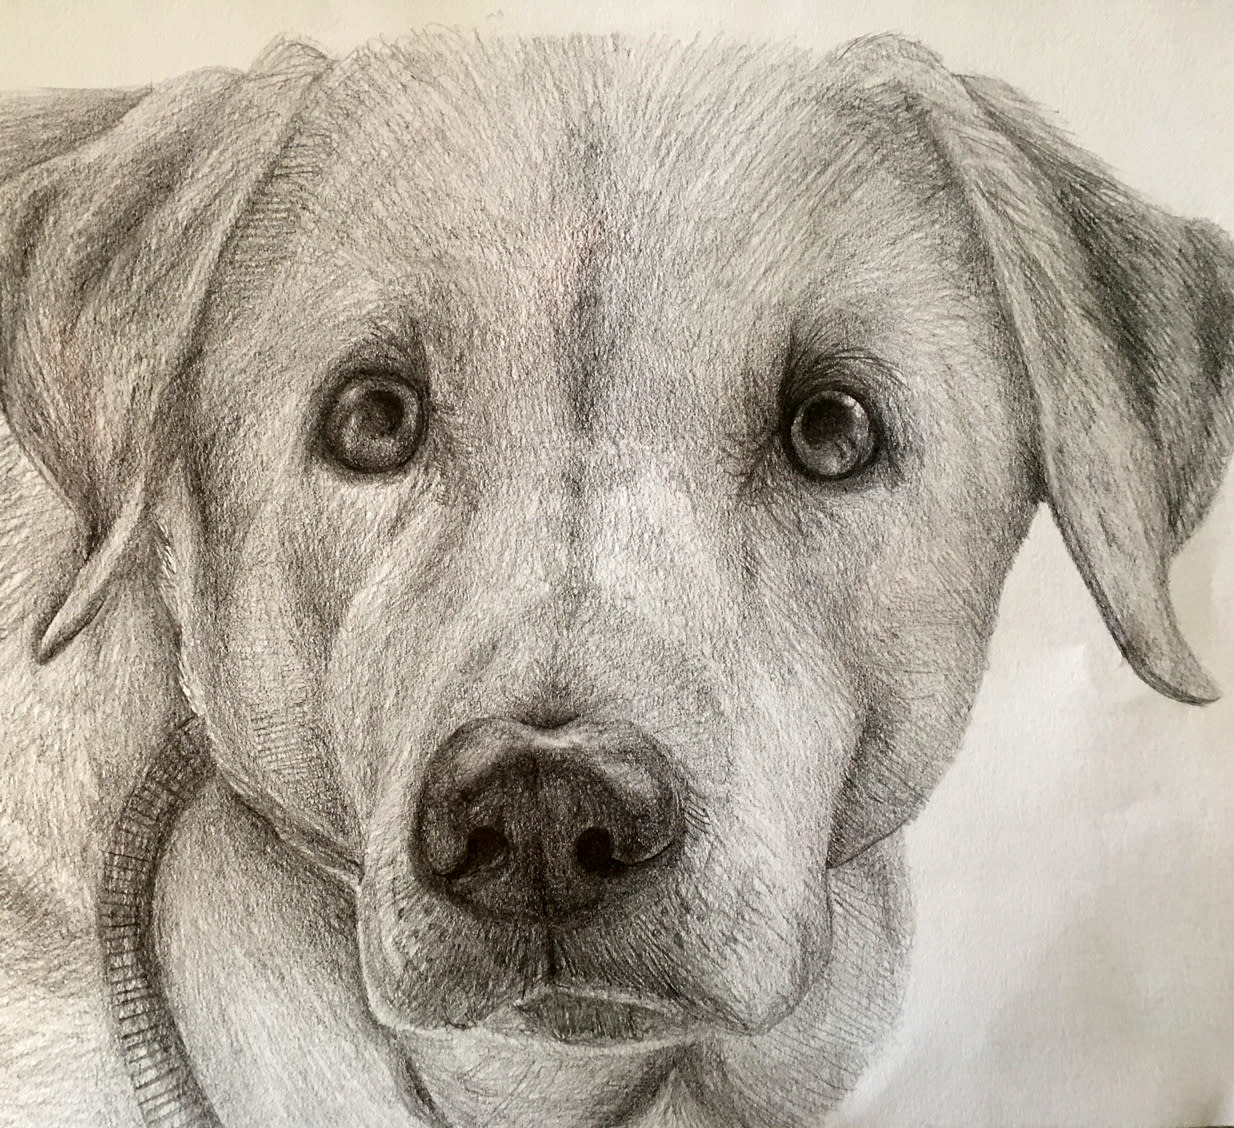 I will hand draw a pencil sketch of your pet